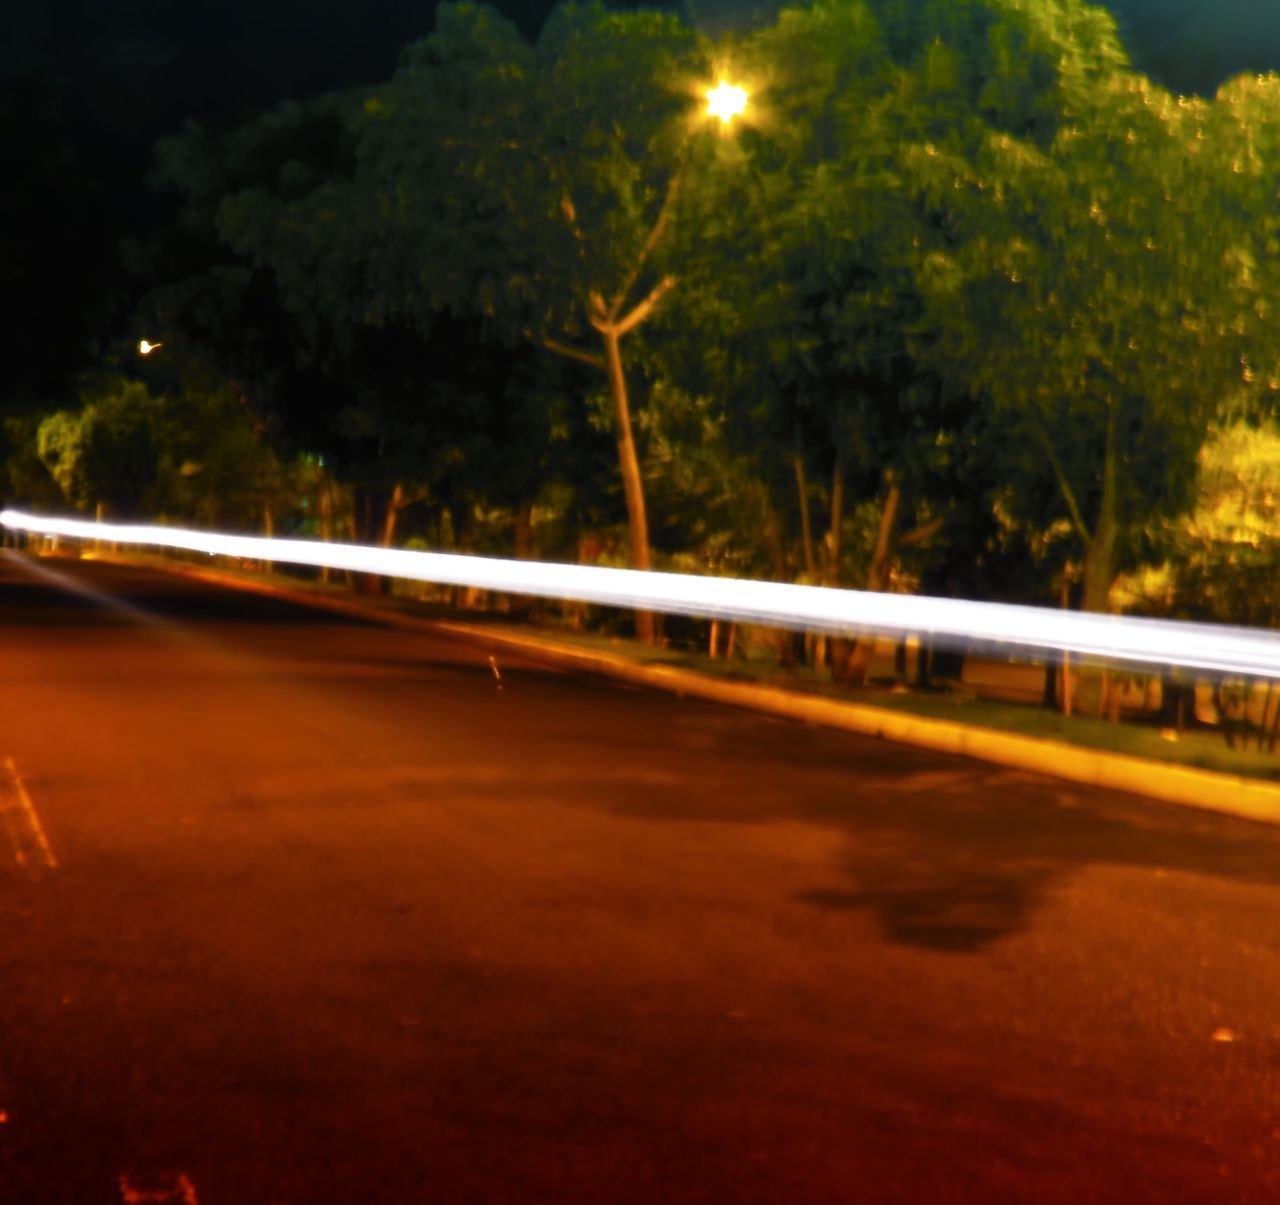 LIGHT TRAILS ON ROAD BY TREES AT NIGHT